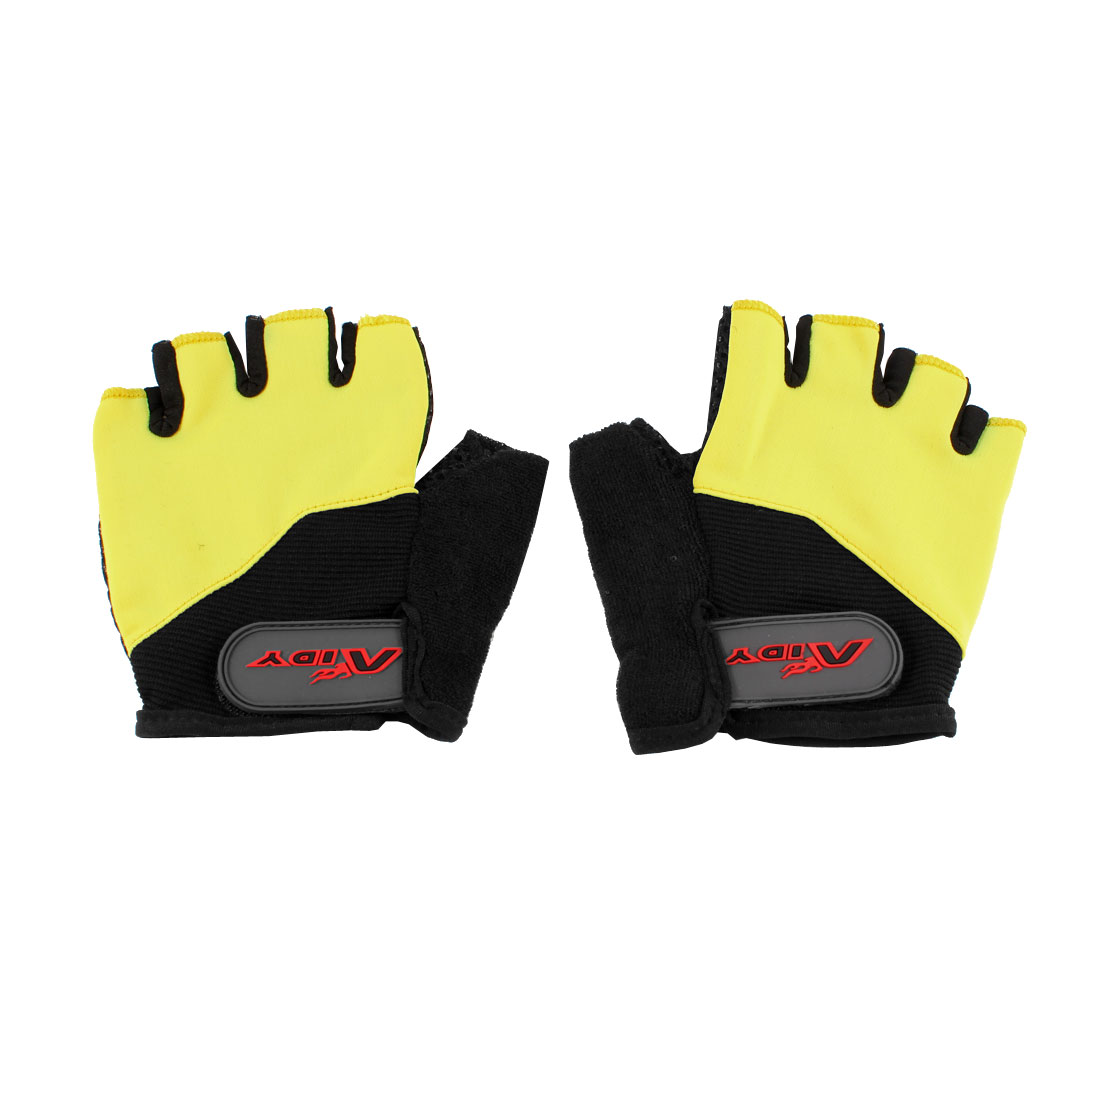 Pair Children Yellow Black Half Finger Skidproof Sports Racing Cycling Gloves